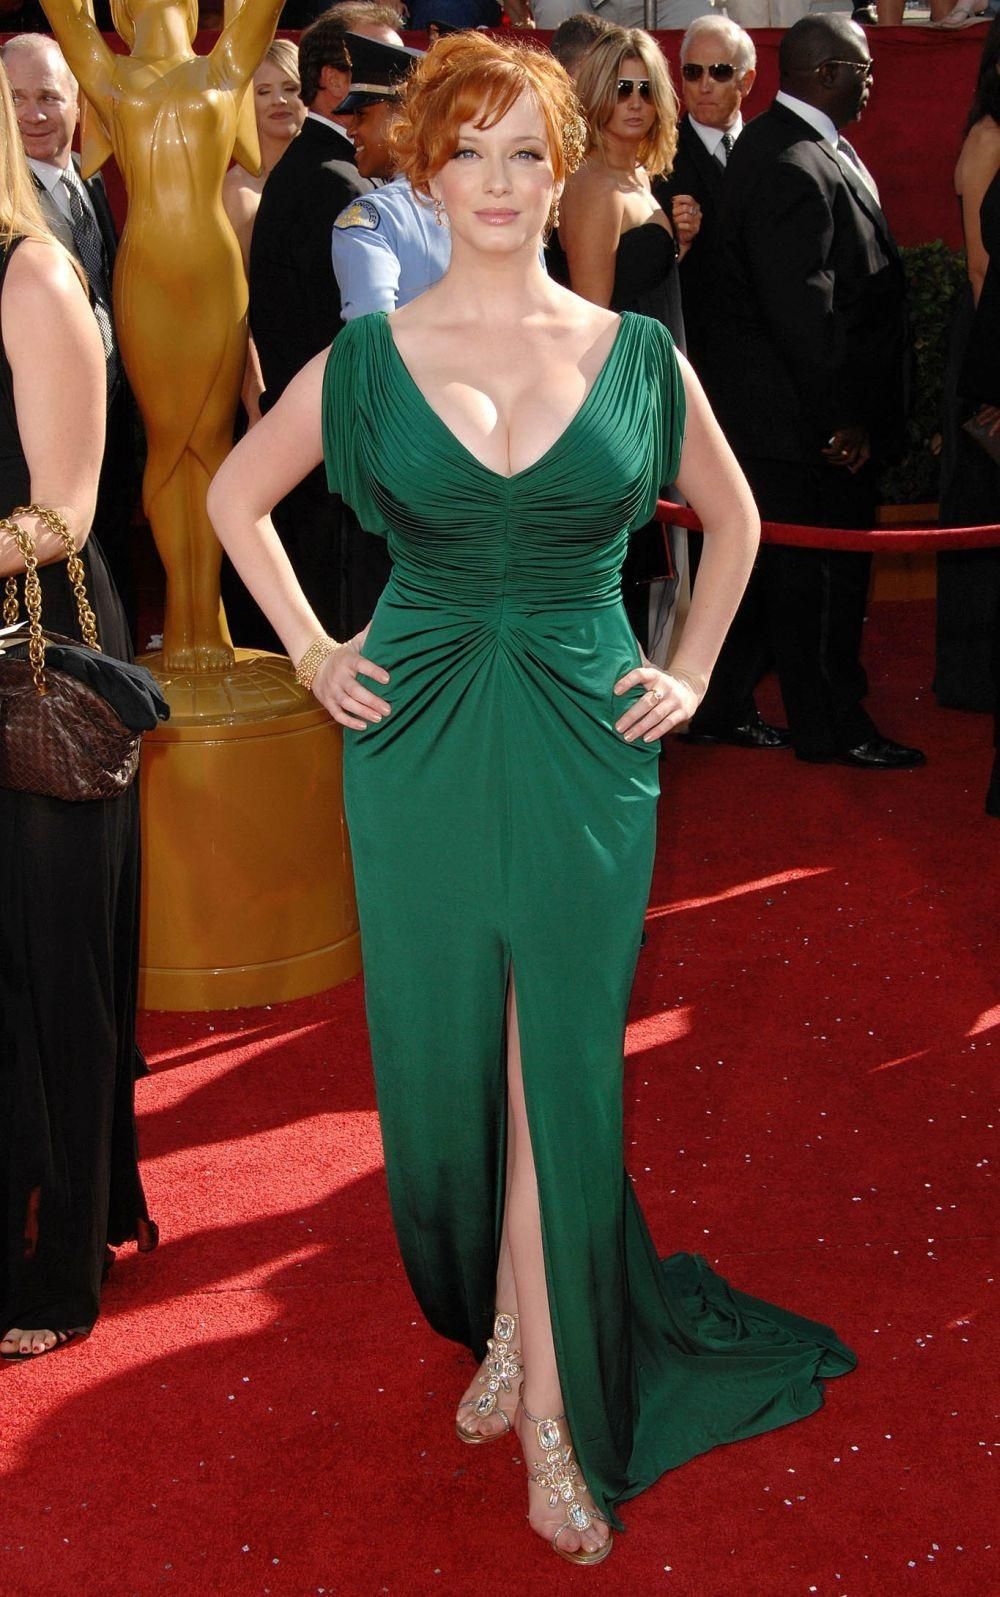 christina-hendricks-body | Body Inspiration | Pinterest